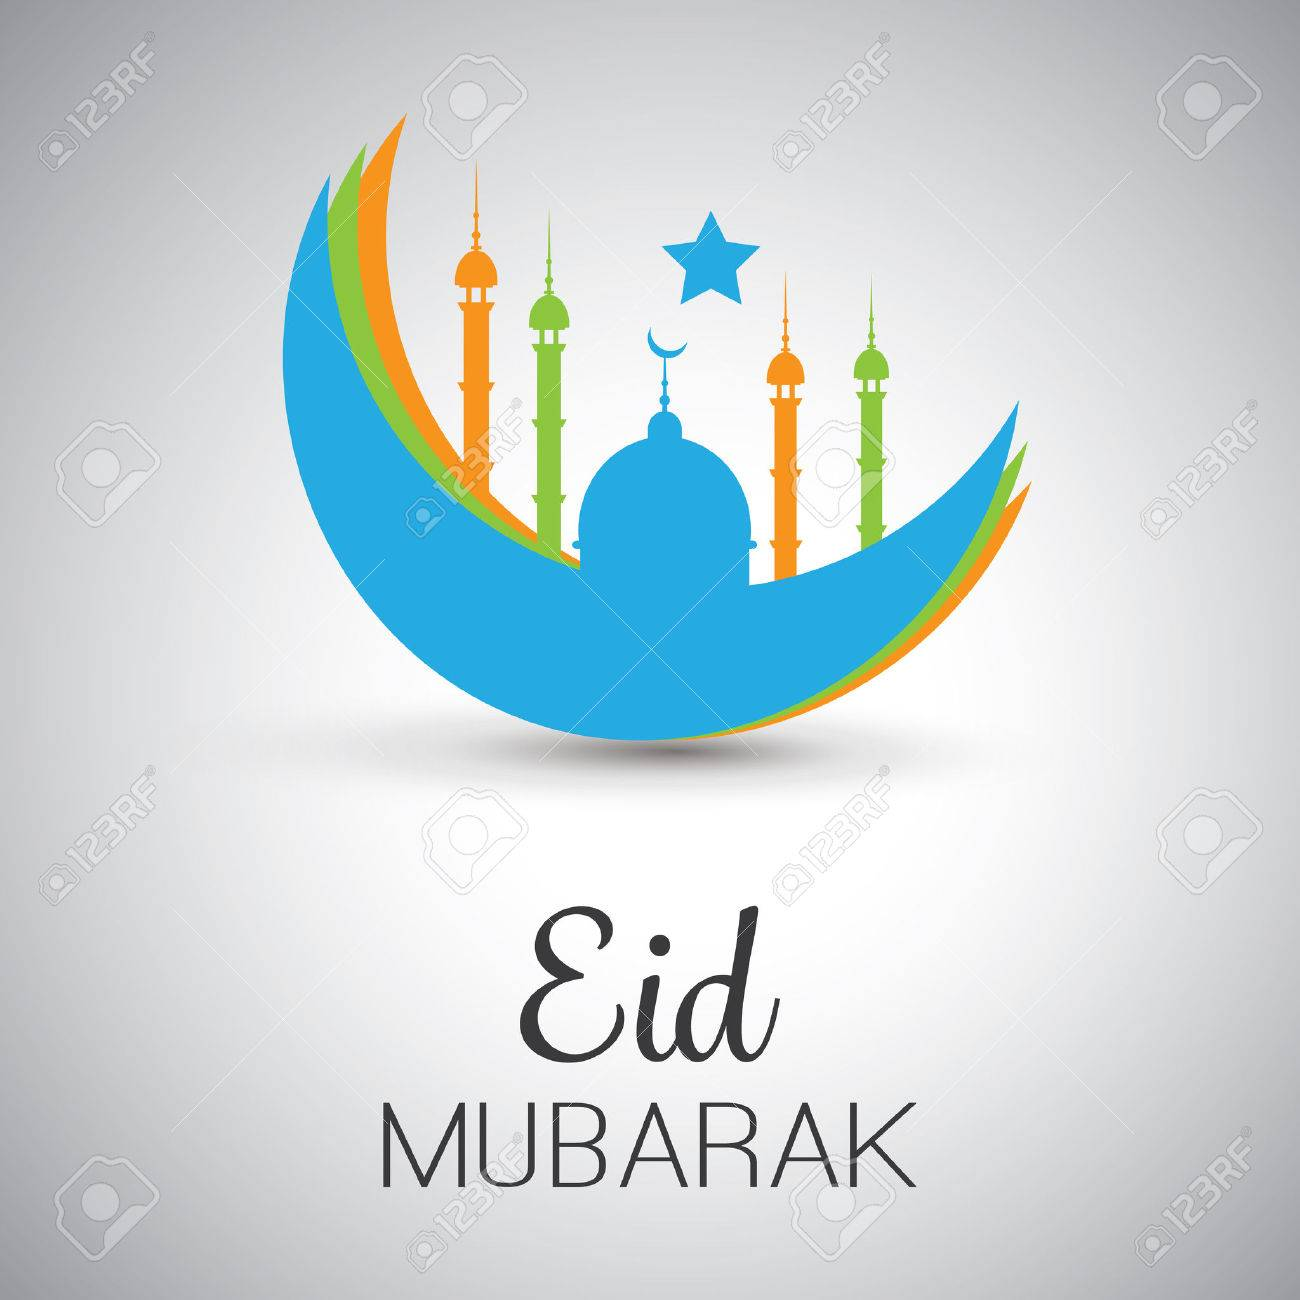 Eid mubarak moon in the sky greeting card for muslim community eid mubarak moon in the sky greeting card for muslim community festival stock vector m4hsunfo